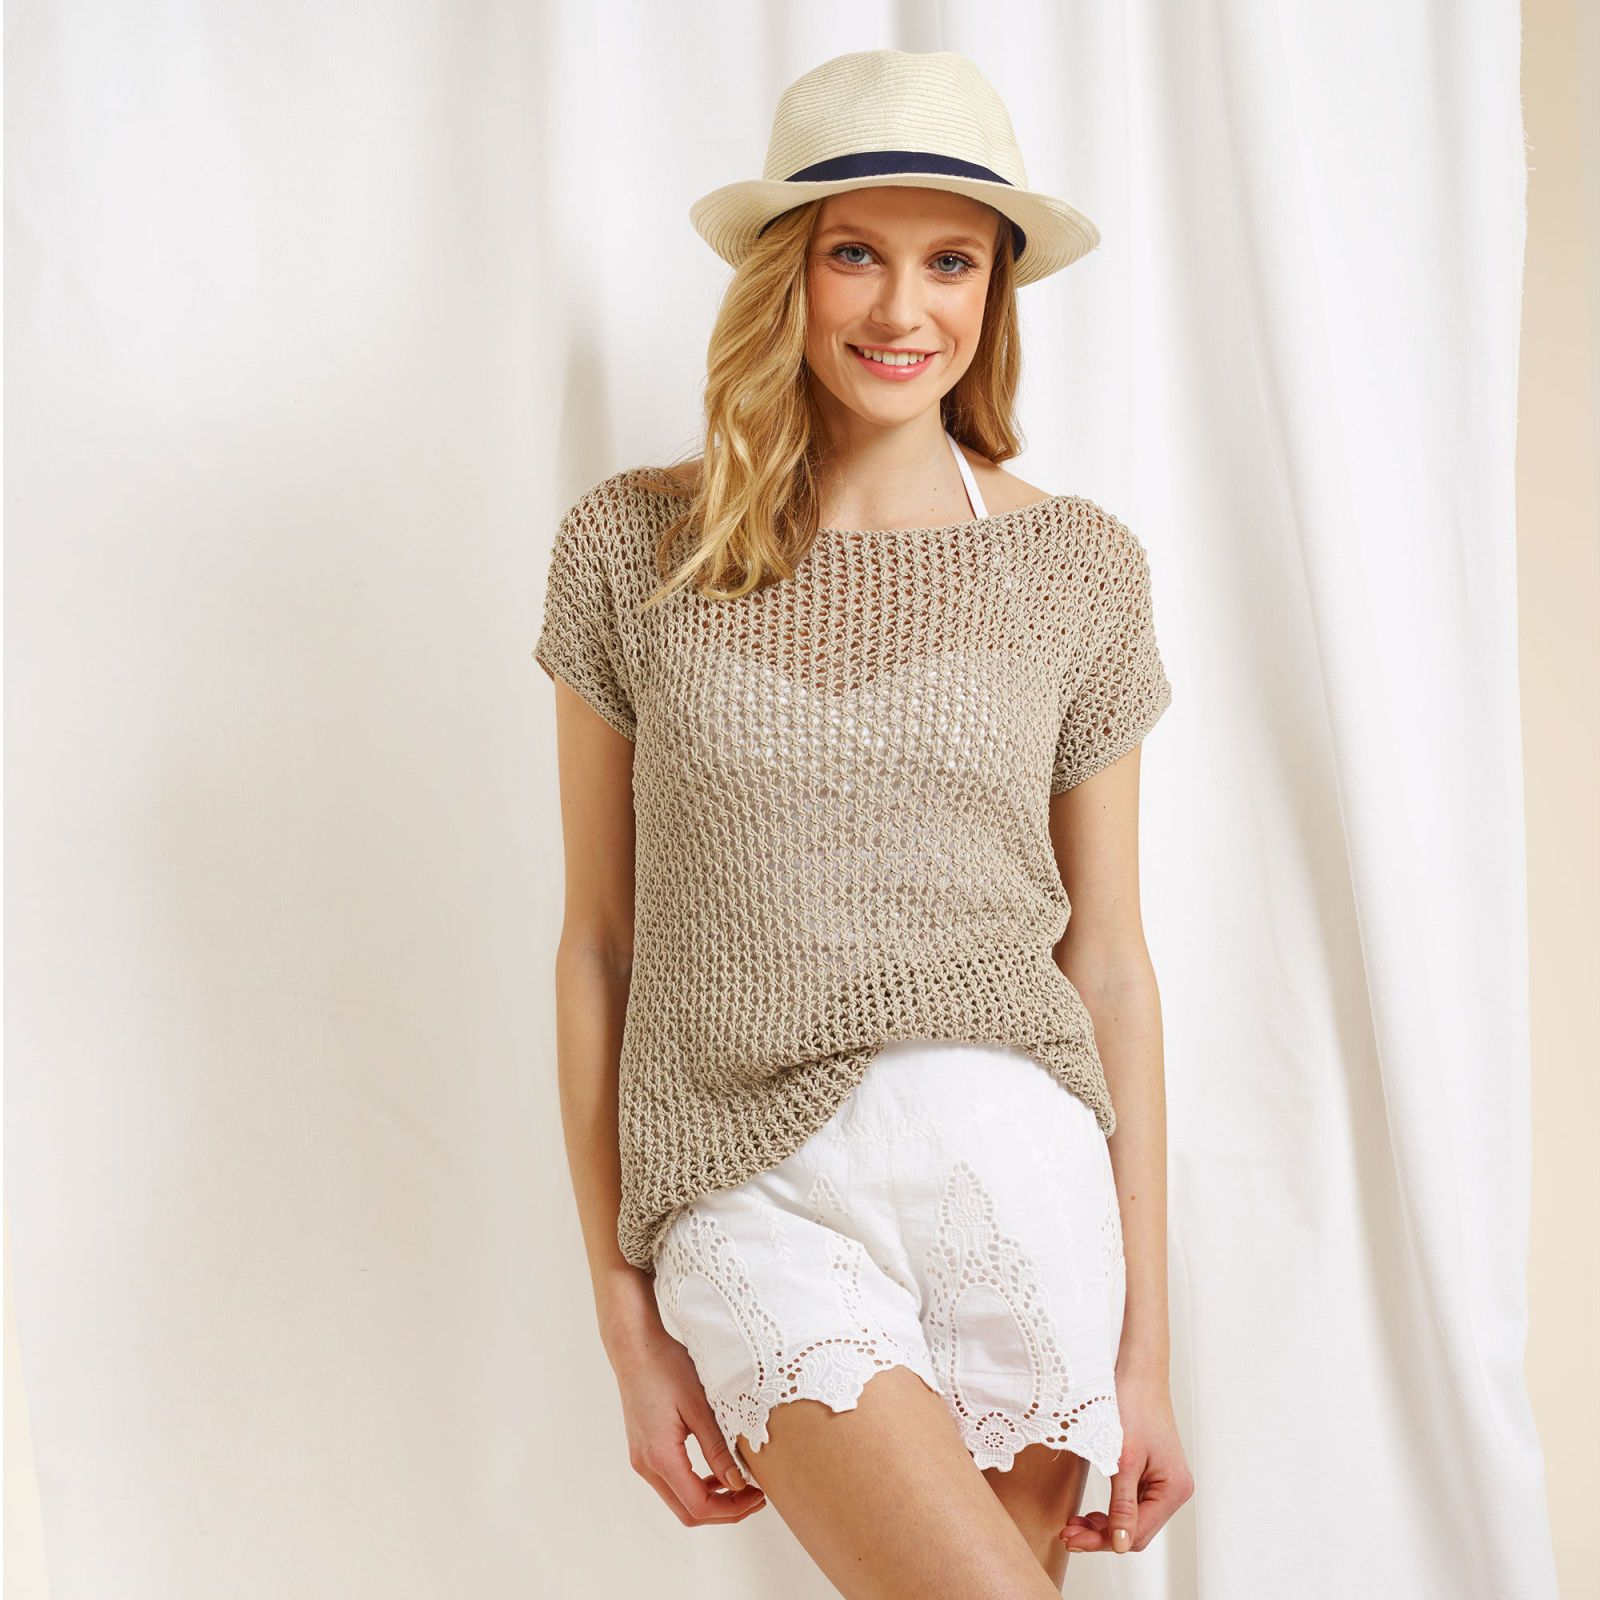 Knit a lovely linen lace top for summer | Pinterest | Stricken und ...